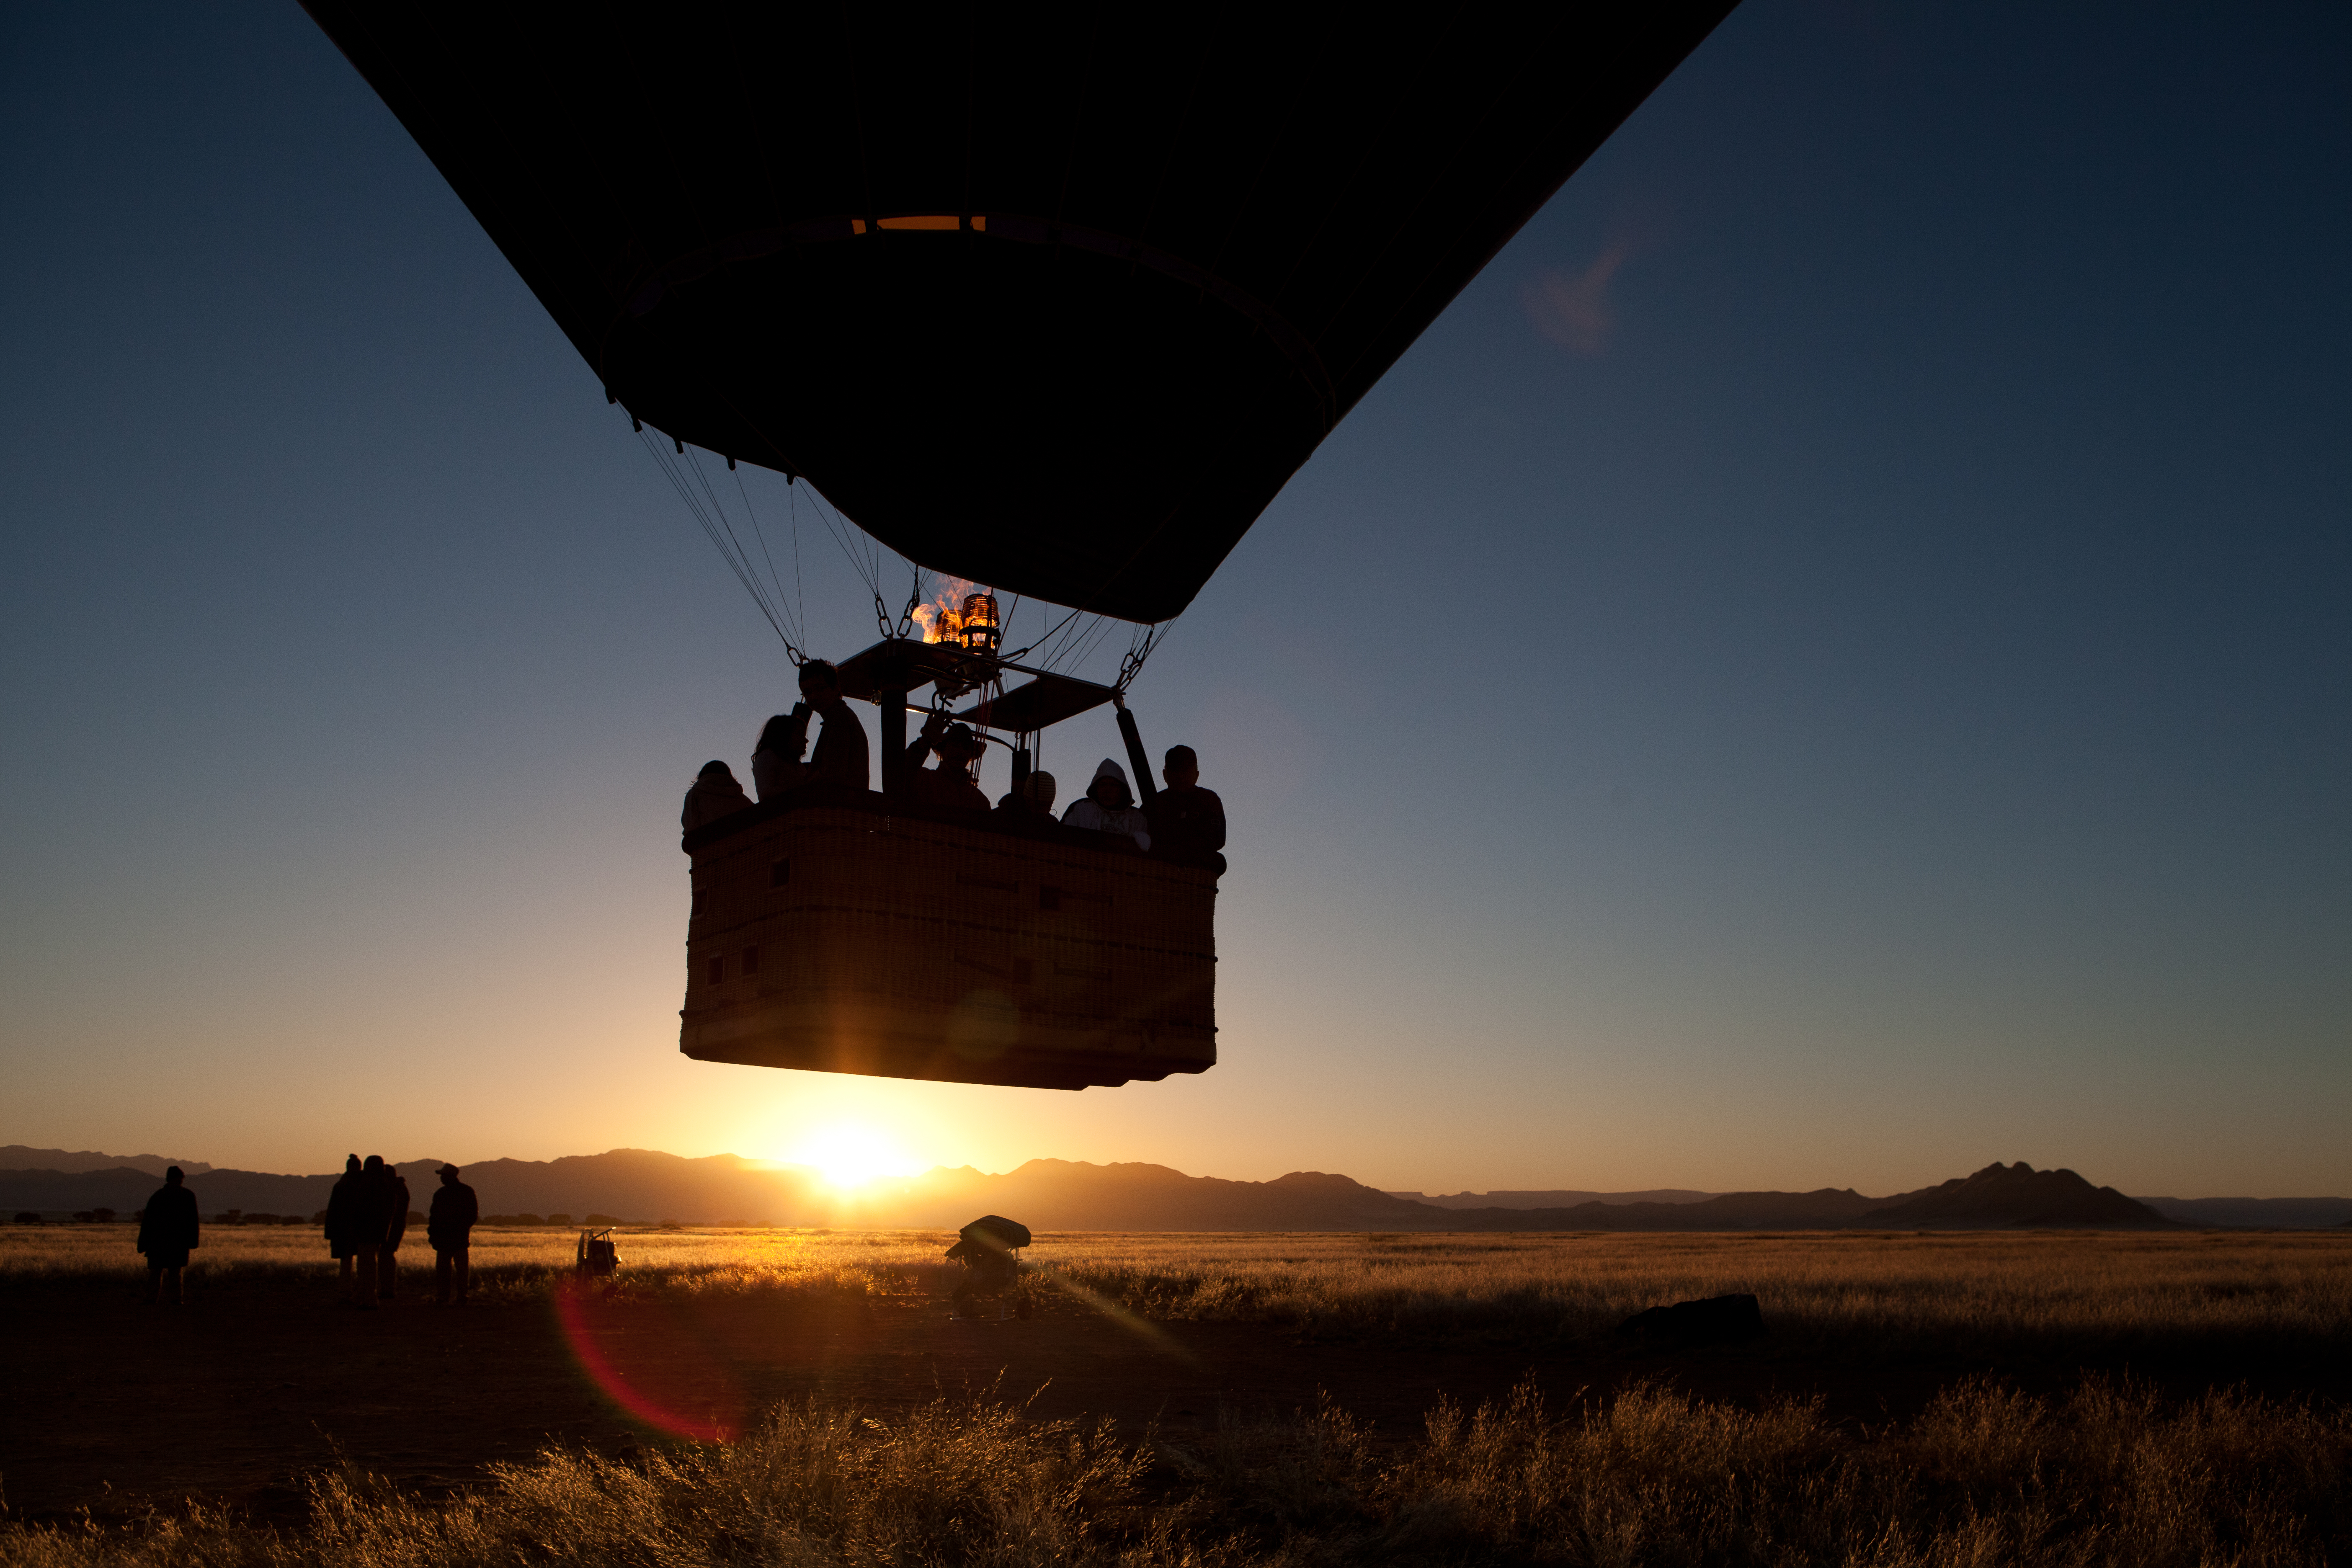 Love is flying over the desert in a hot air balloon